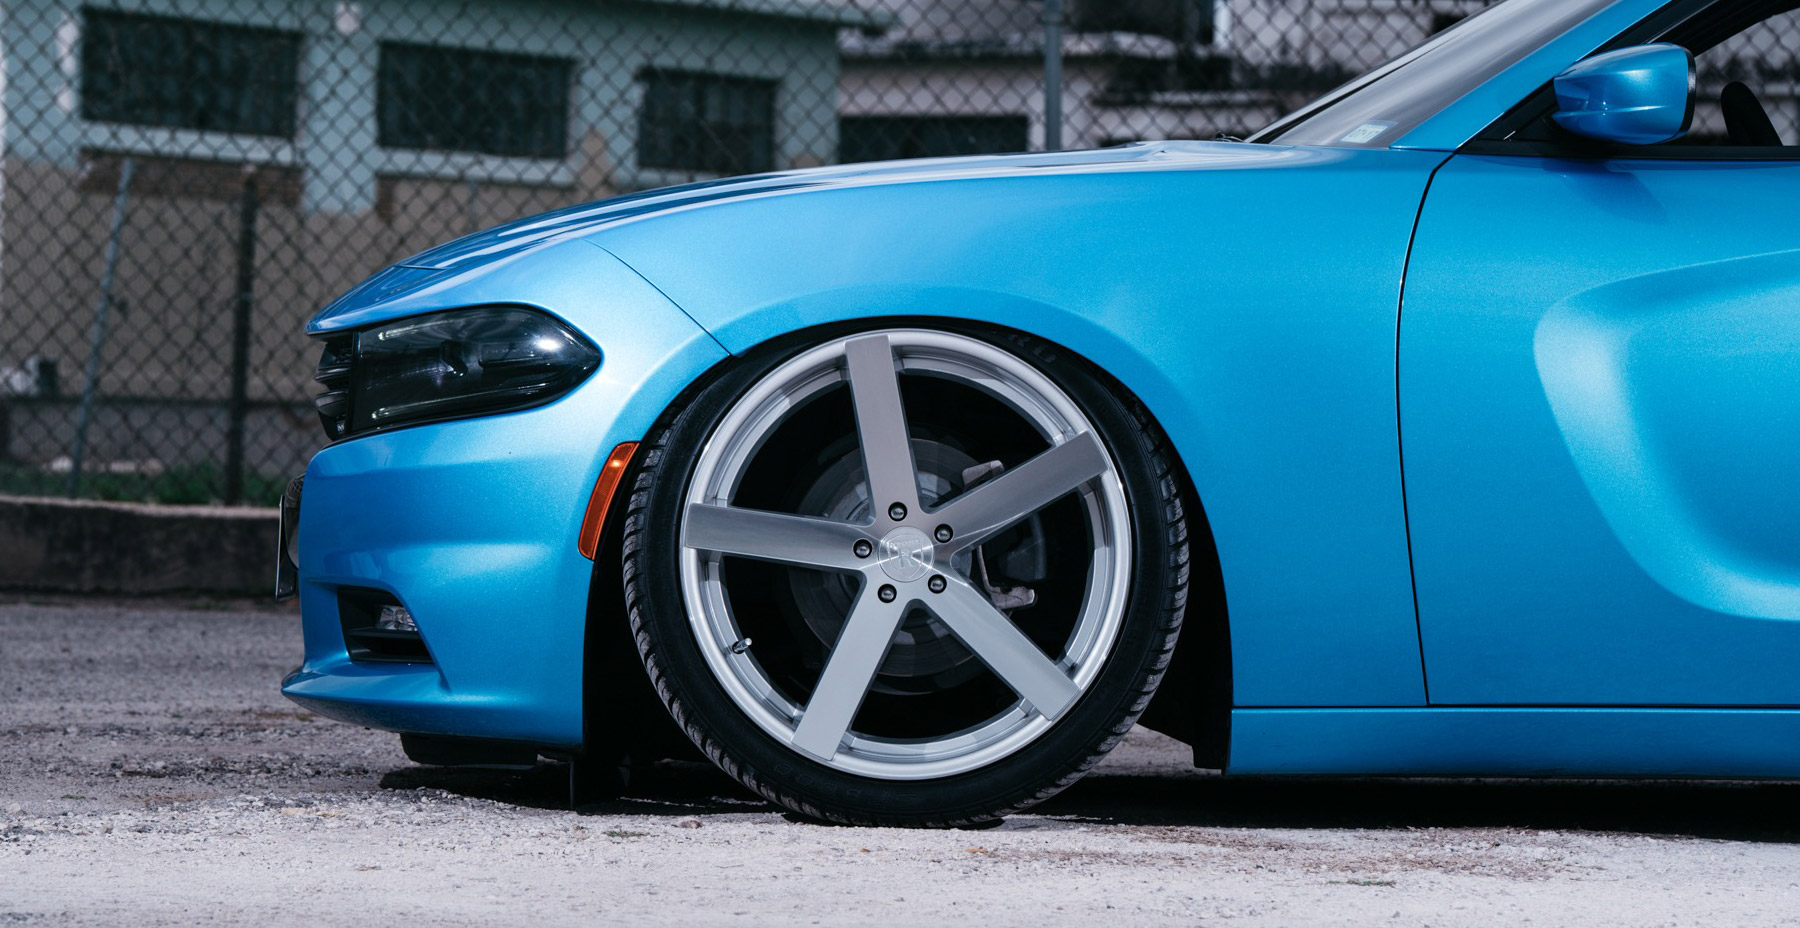 Blue Dodge Charger x Rohana RC22 Wheels (Finished in Machine Silver)